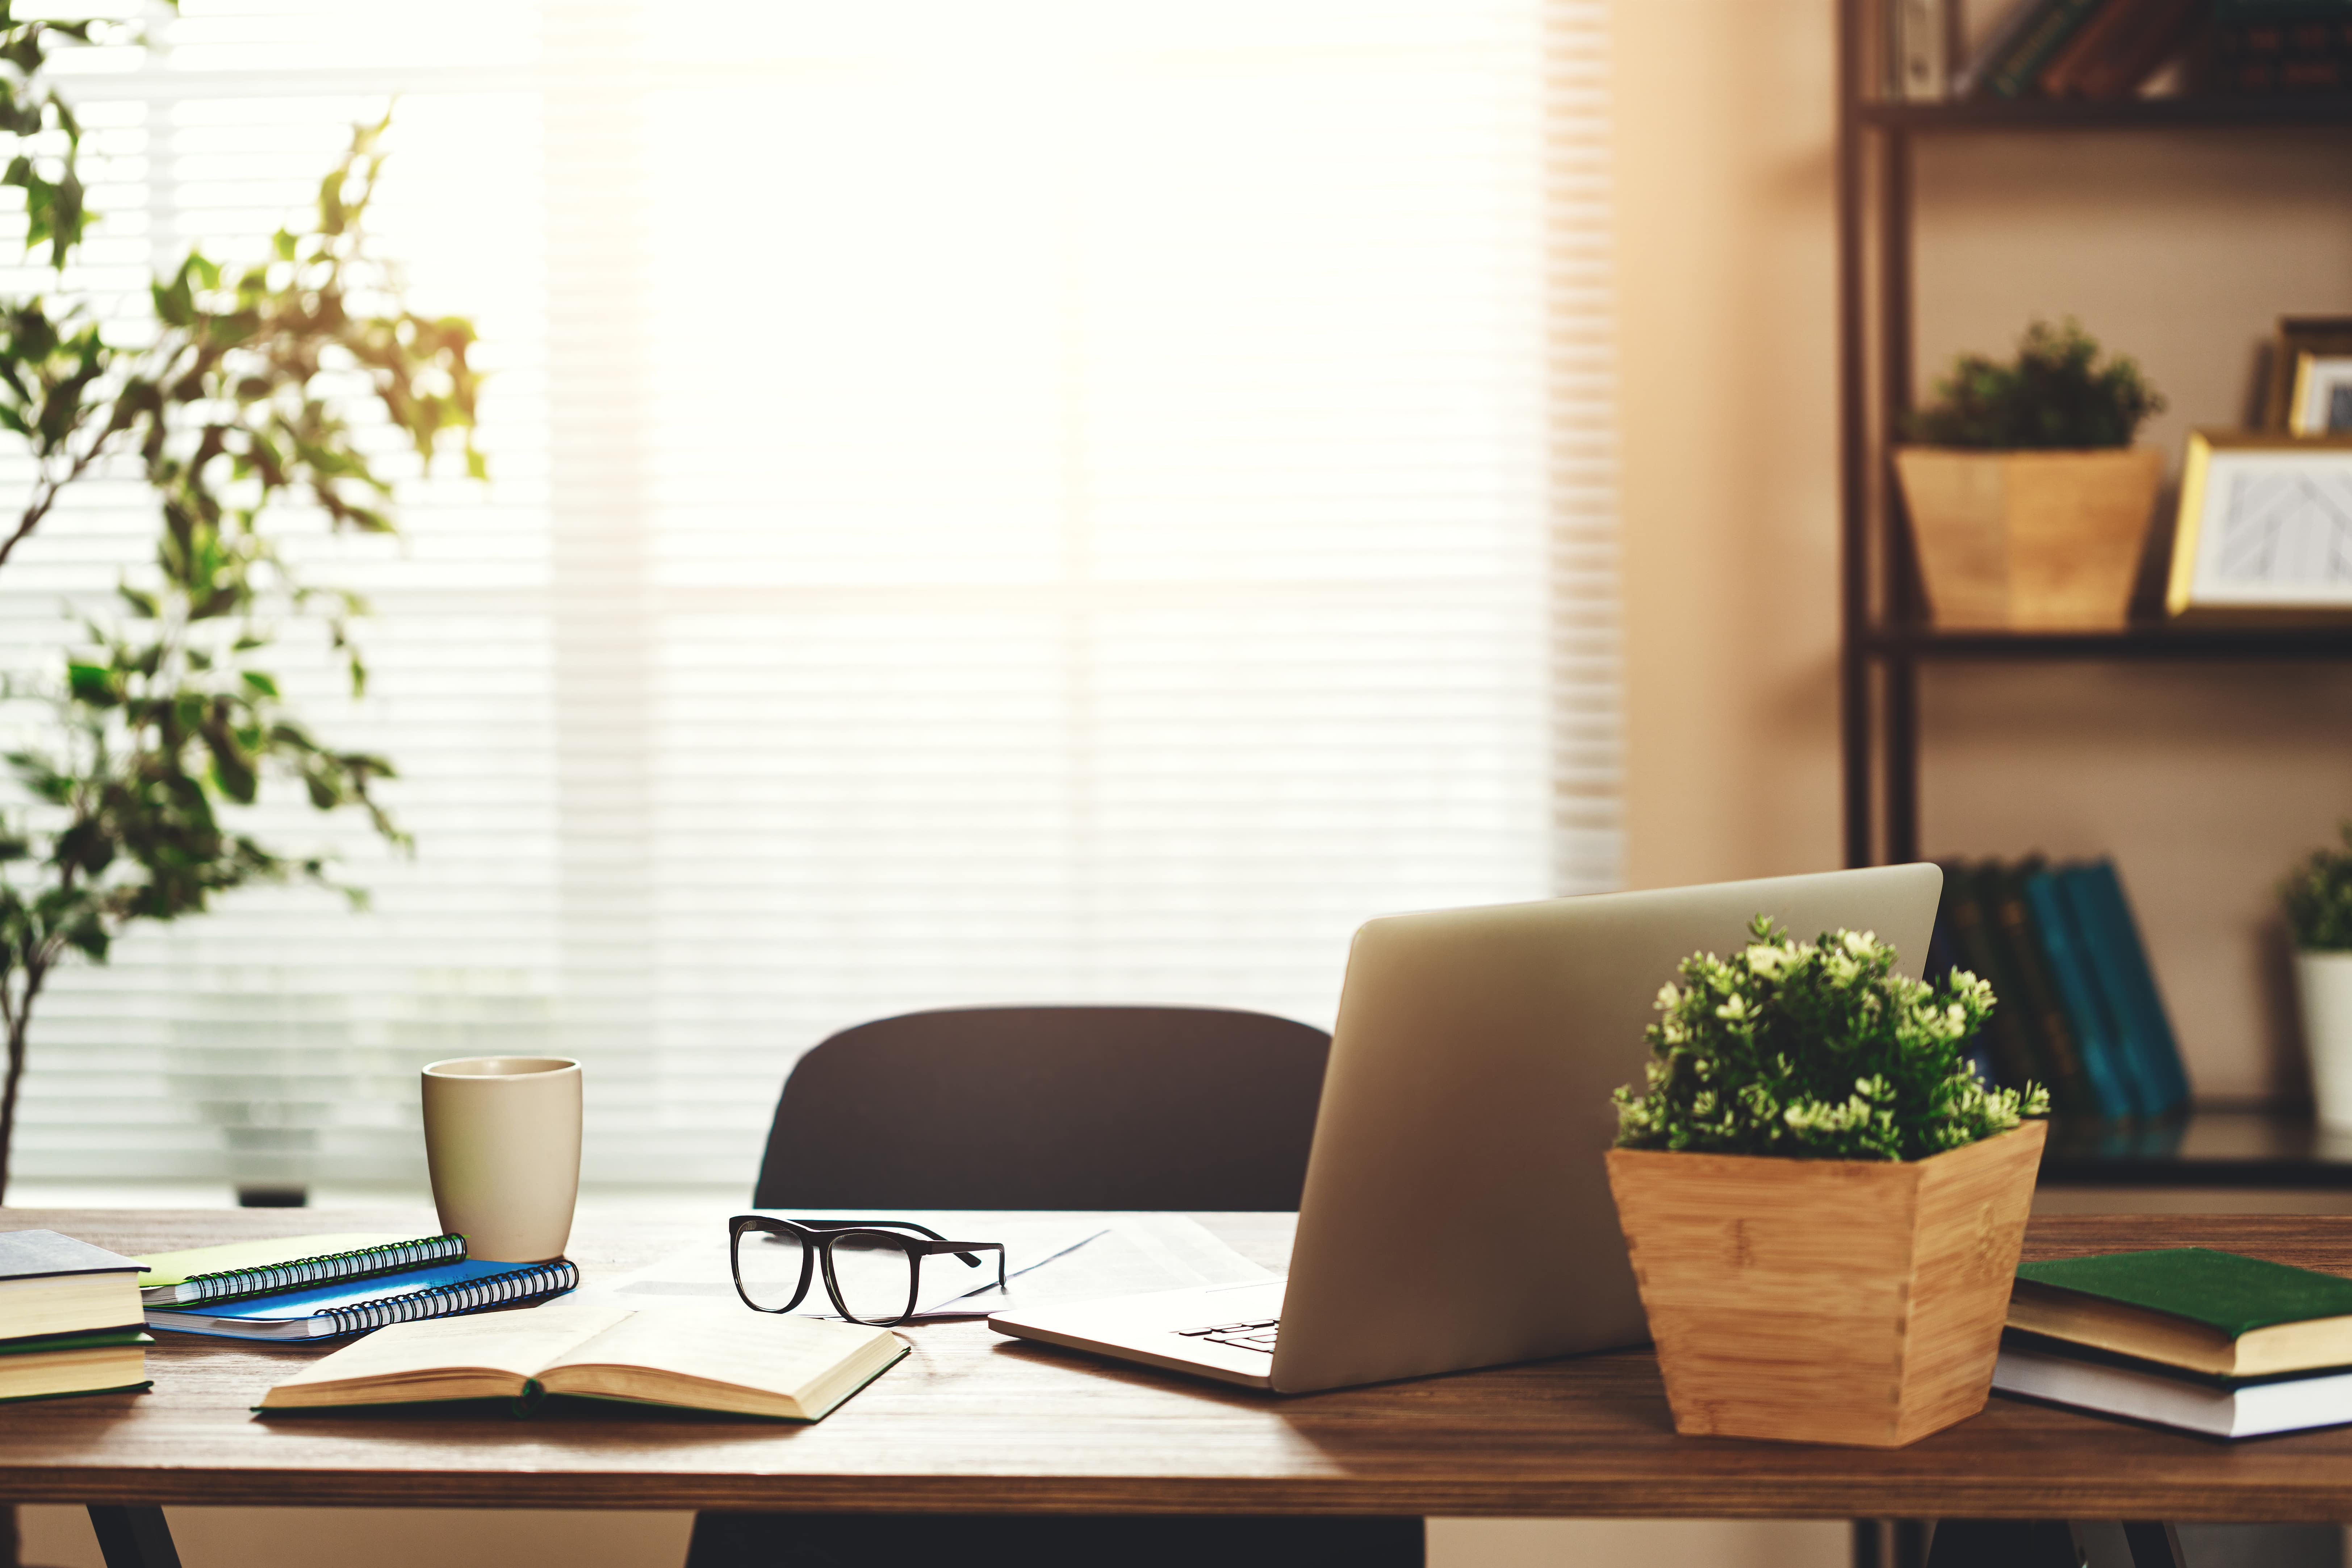 Warm sunlight shines through the blinds onto a wooden desk that holds a silver laptop, several books, a couple plants, reading glasses, and a coffee mug.